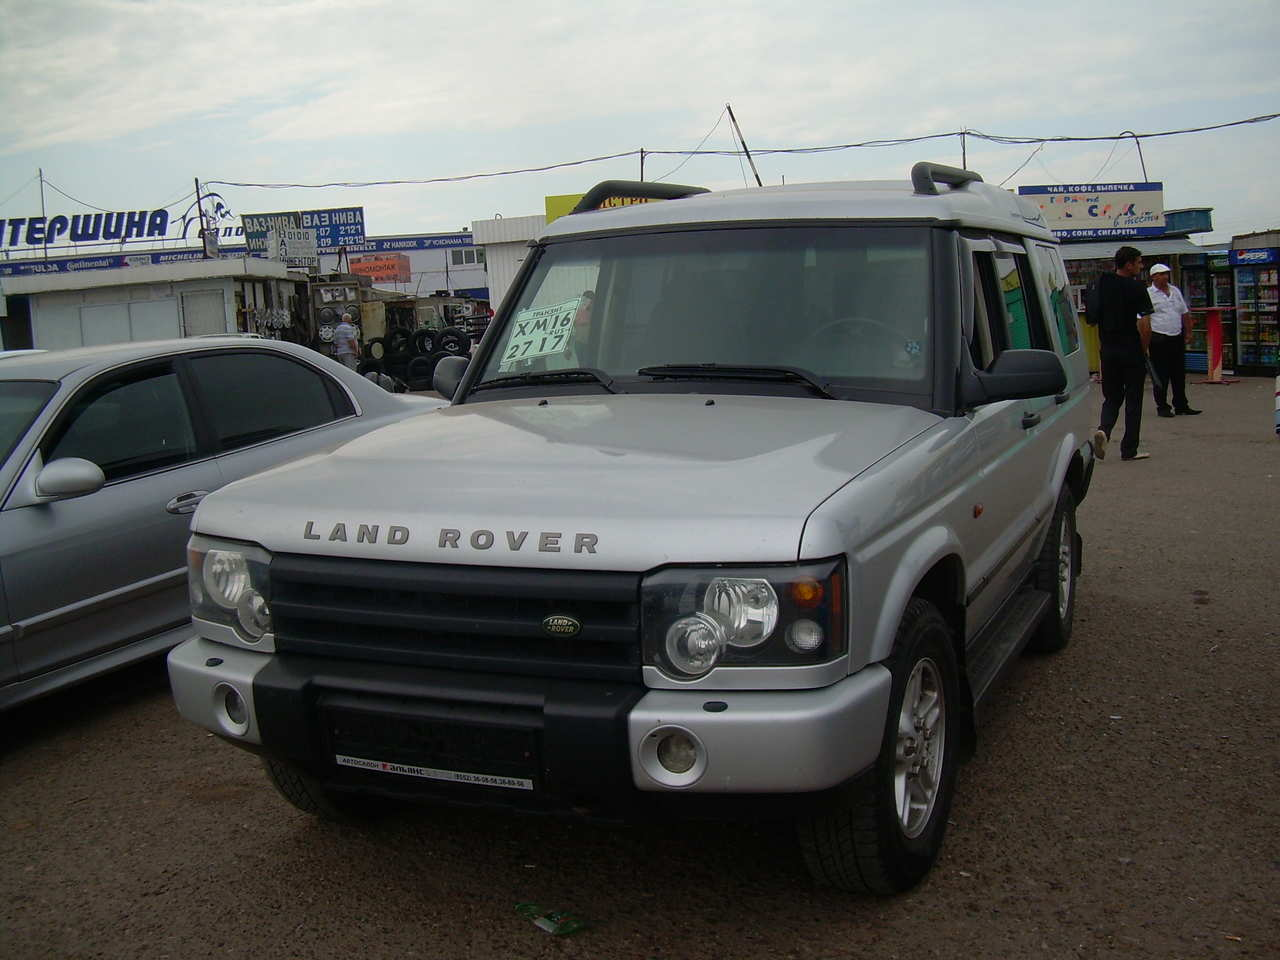 used 2004 land rover discovery photos 2500cc diesel manual for sale. Black Bedroom Furniture Sets. Home Design Ideas